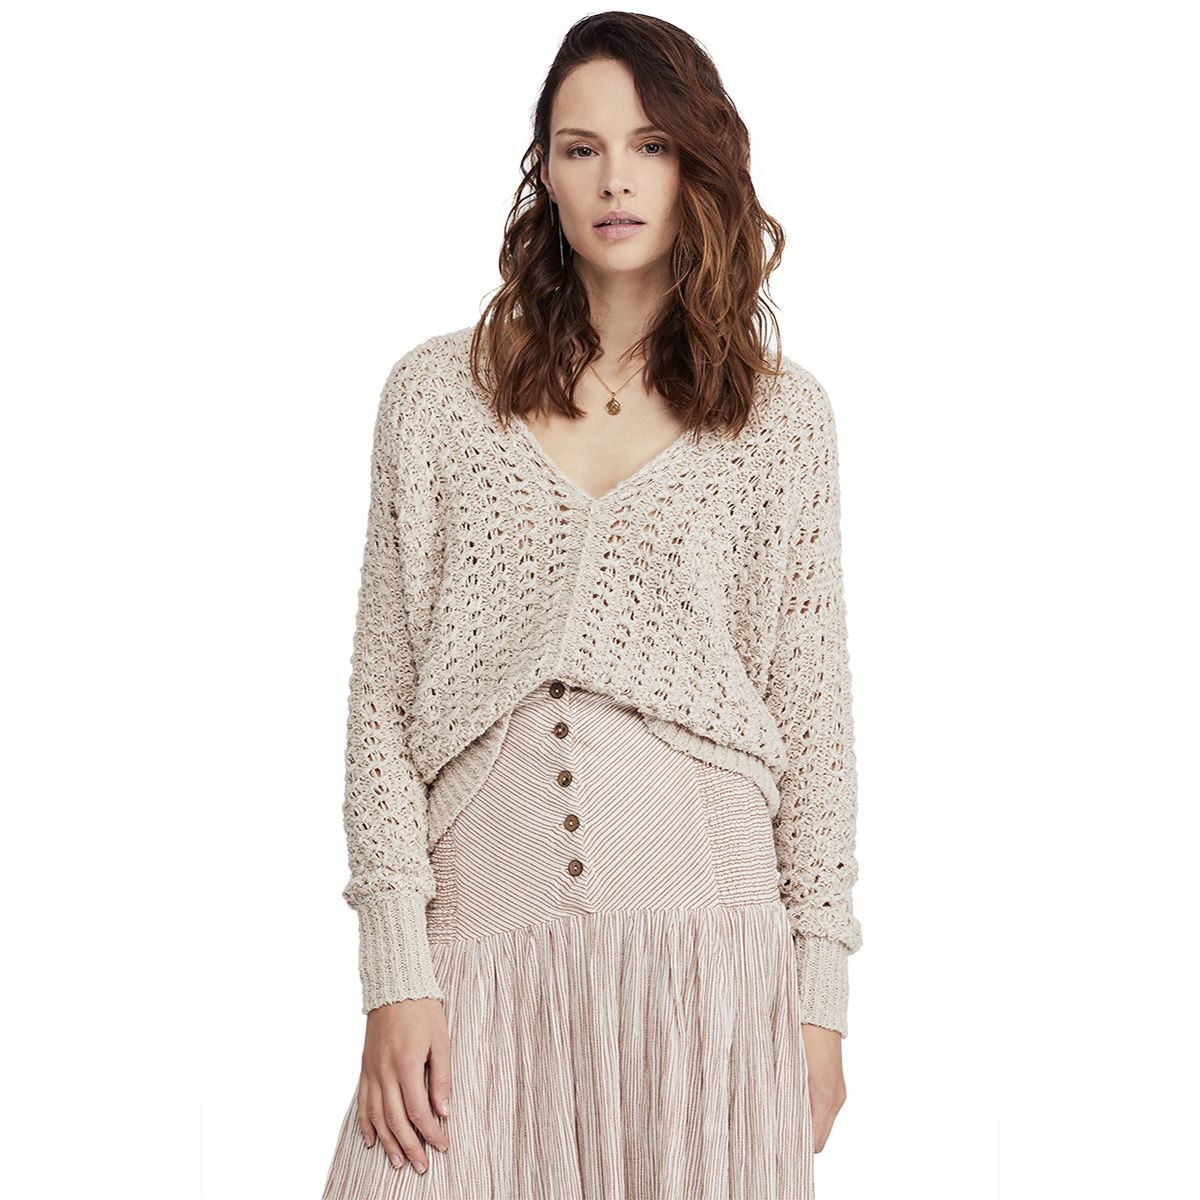 6138d40c187a4 Free People Women's Sweaters - Macy's